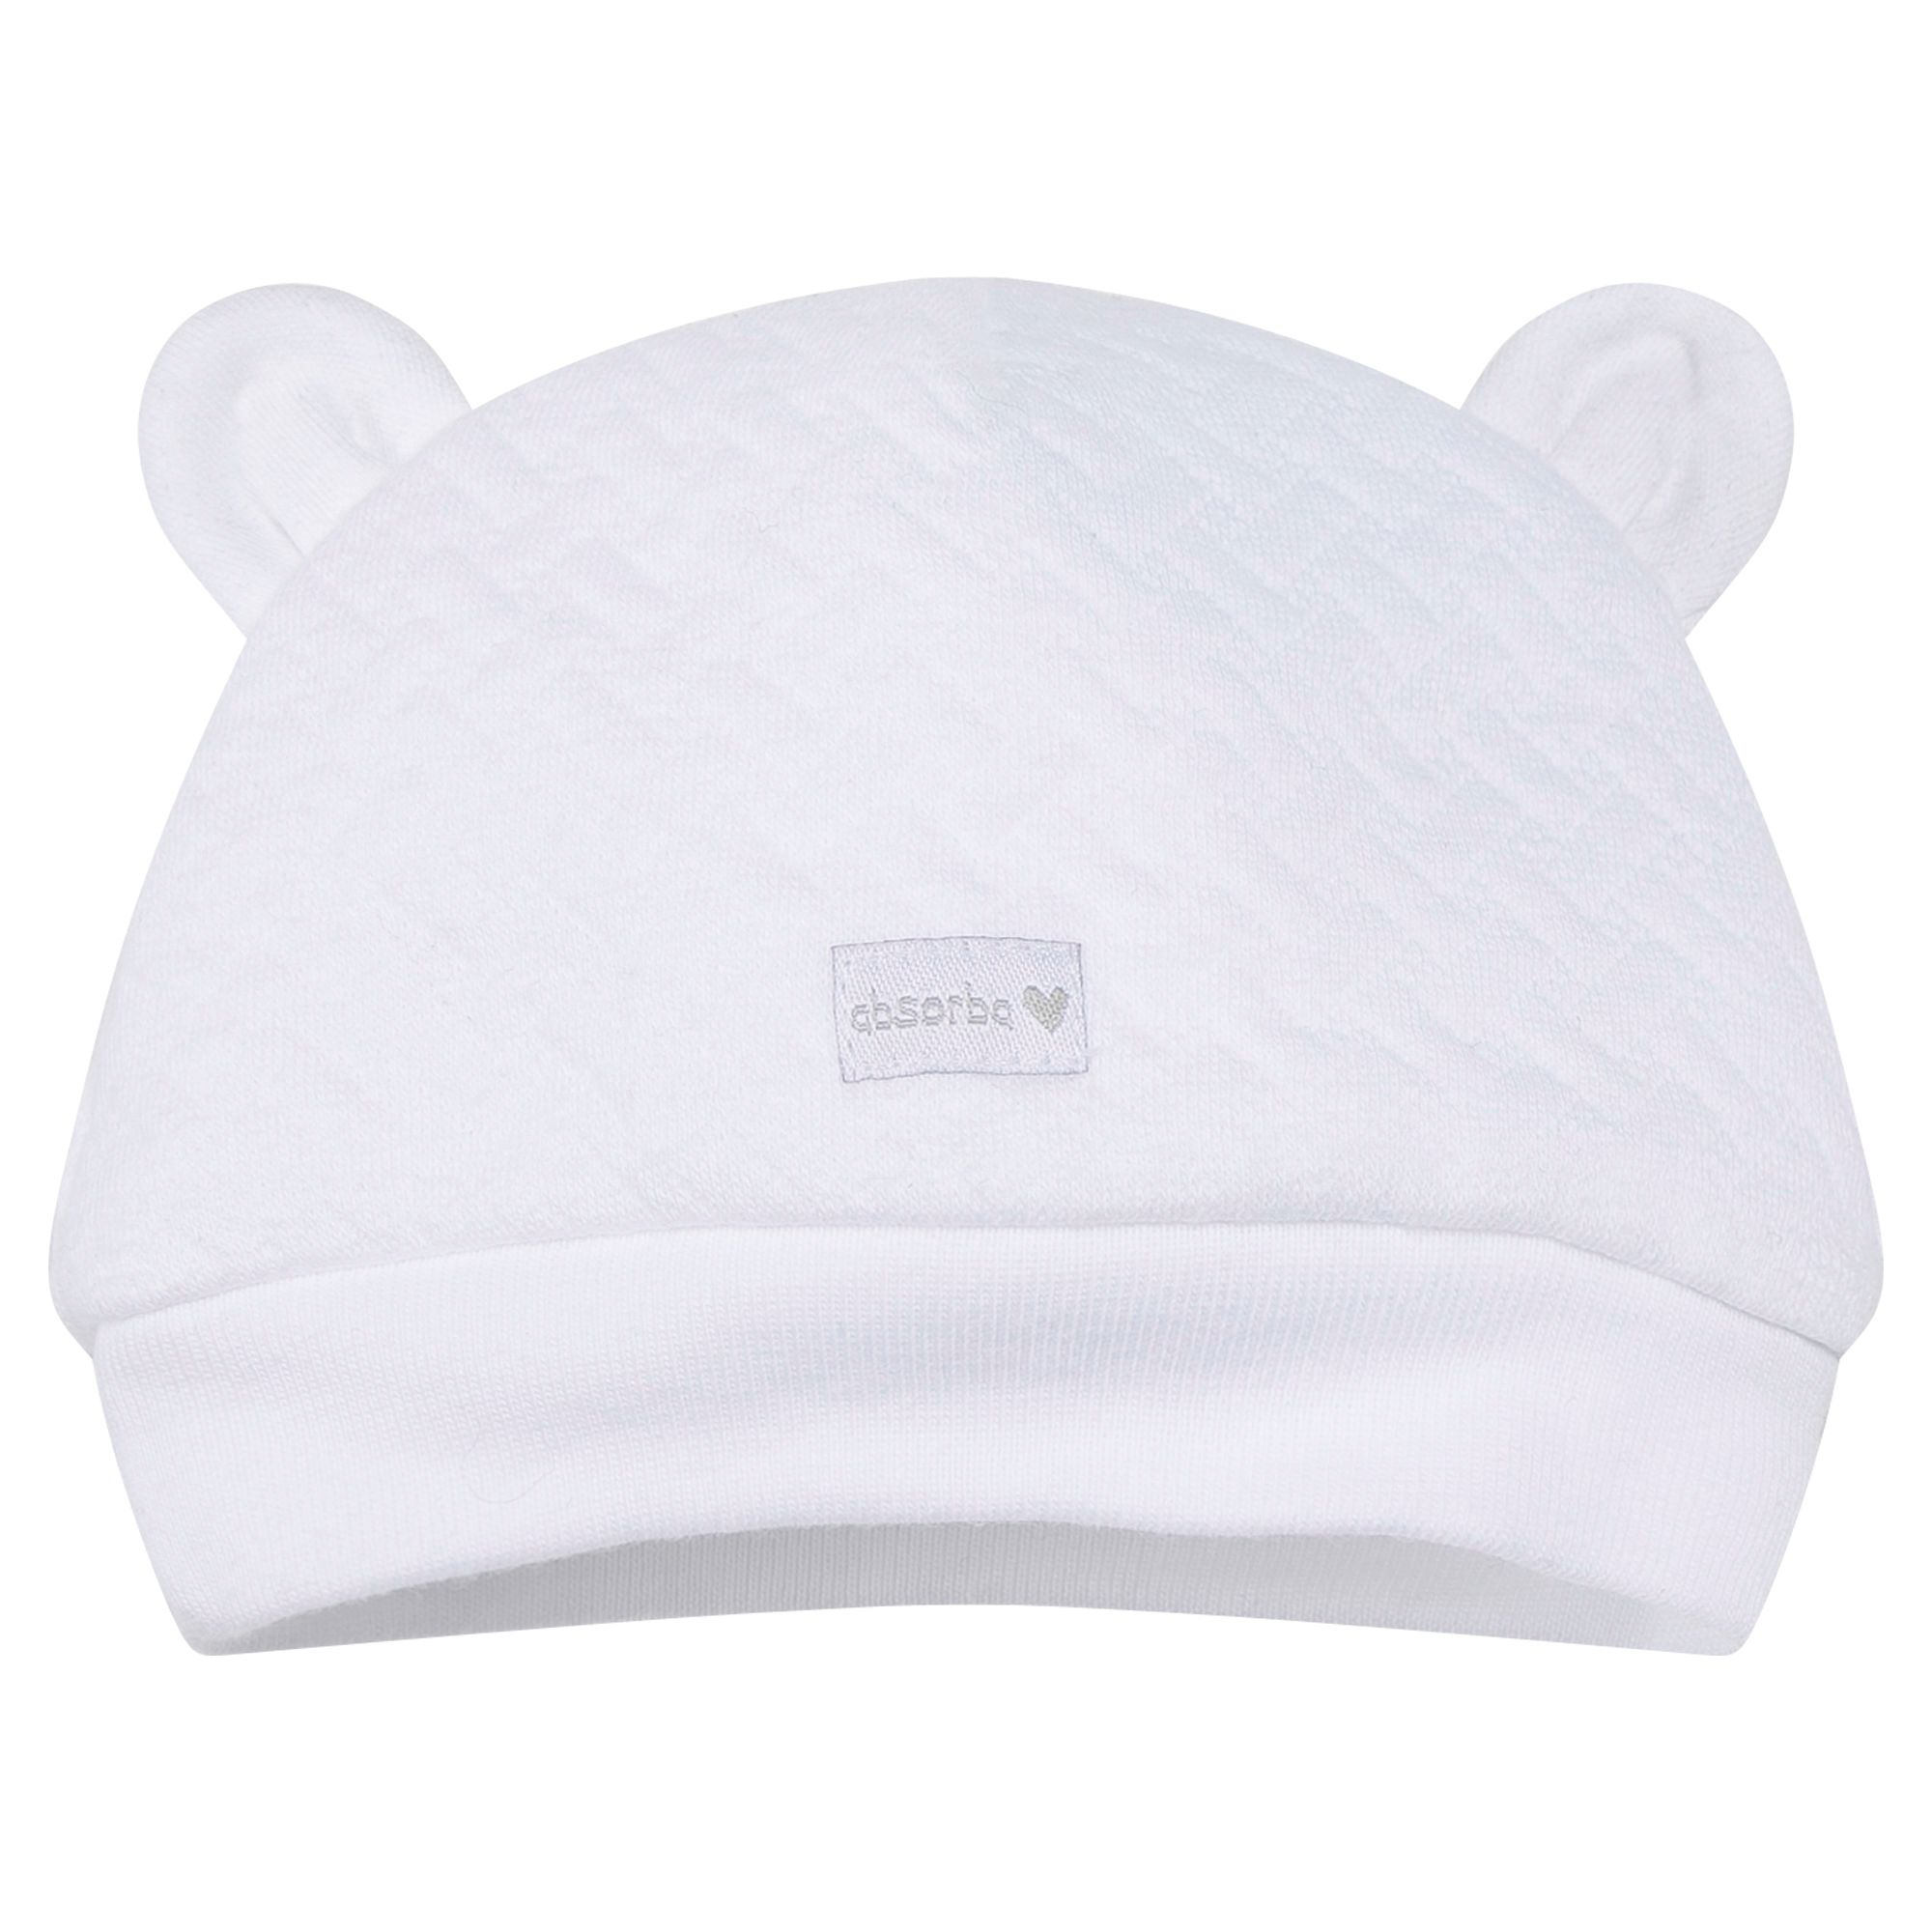 Absorba Absorba Newborn Quilted Cotton Hat, White